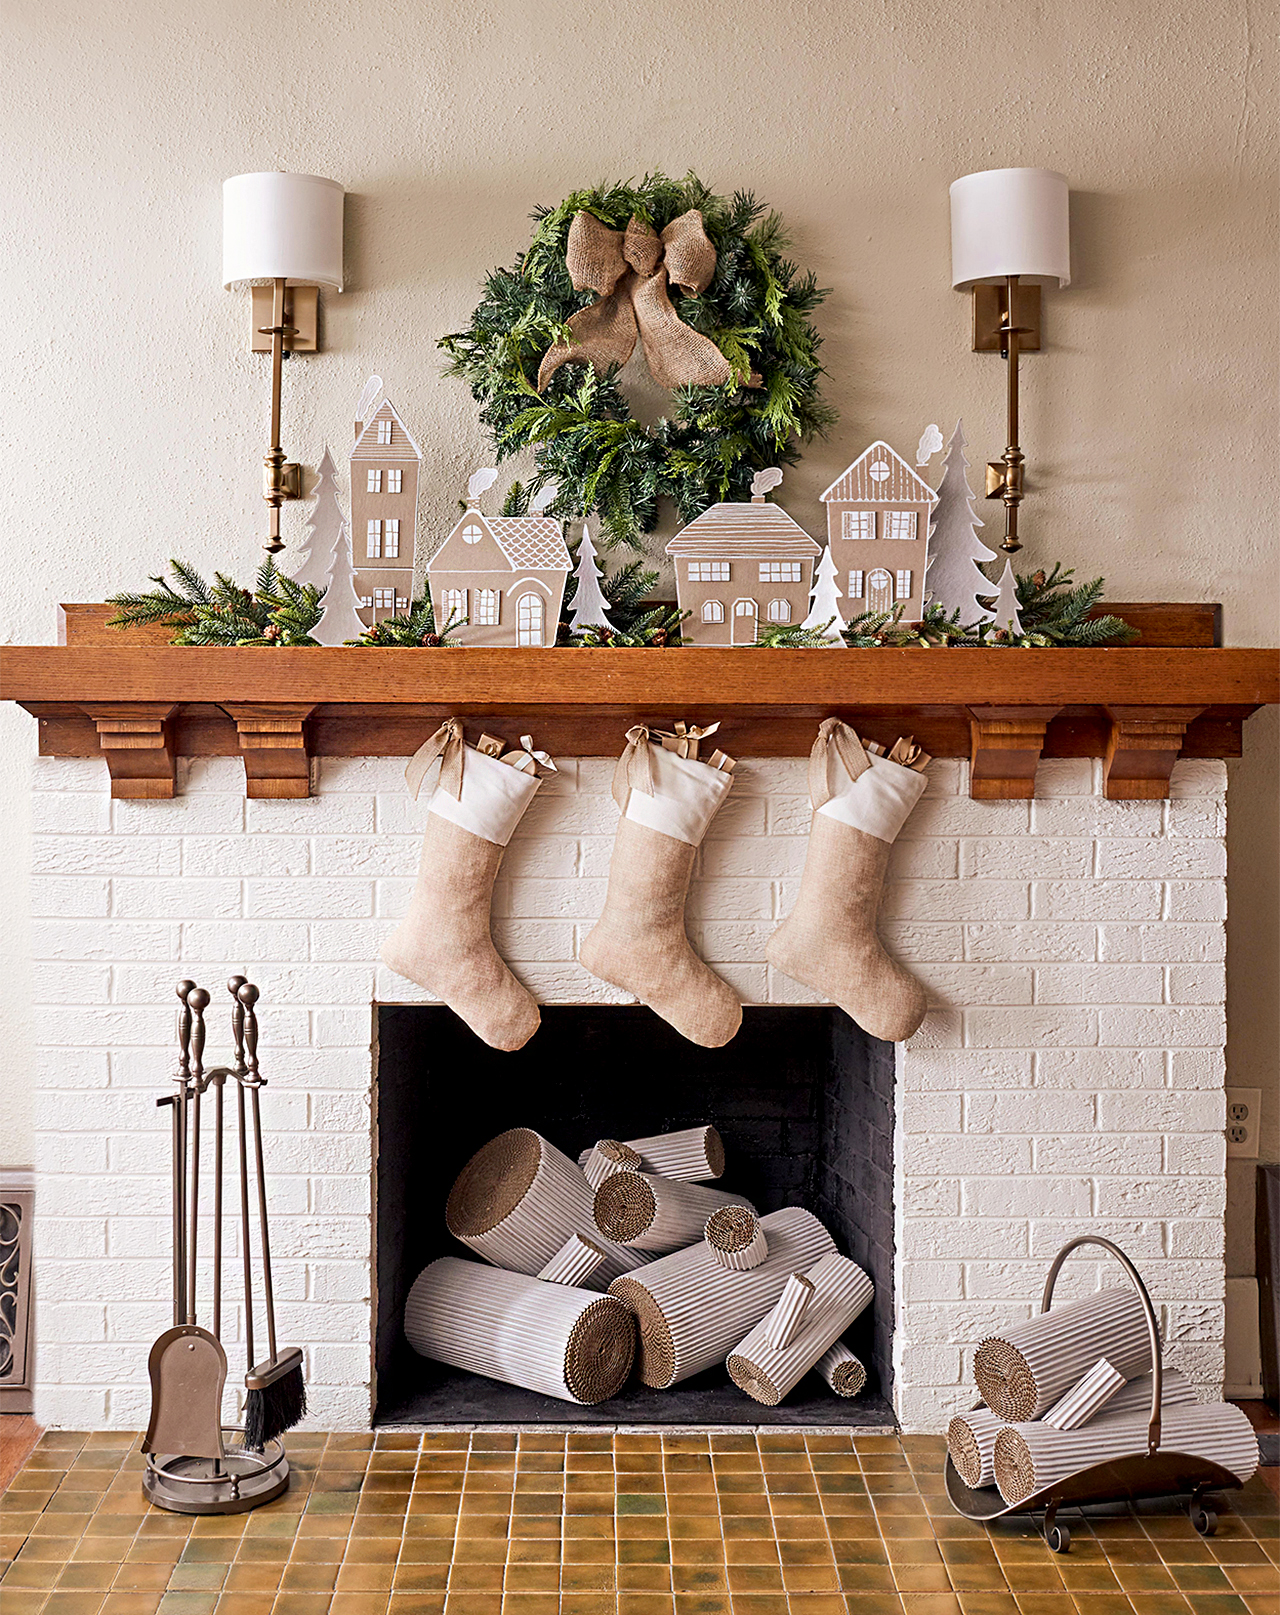 diy christmas decor with cardboard village